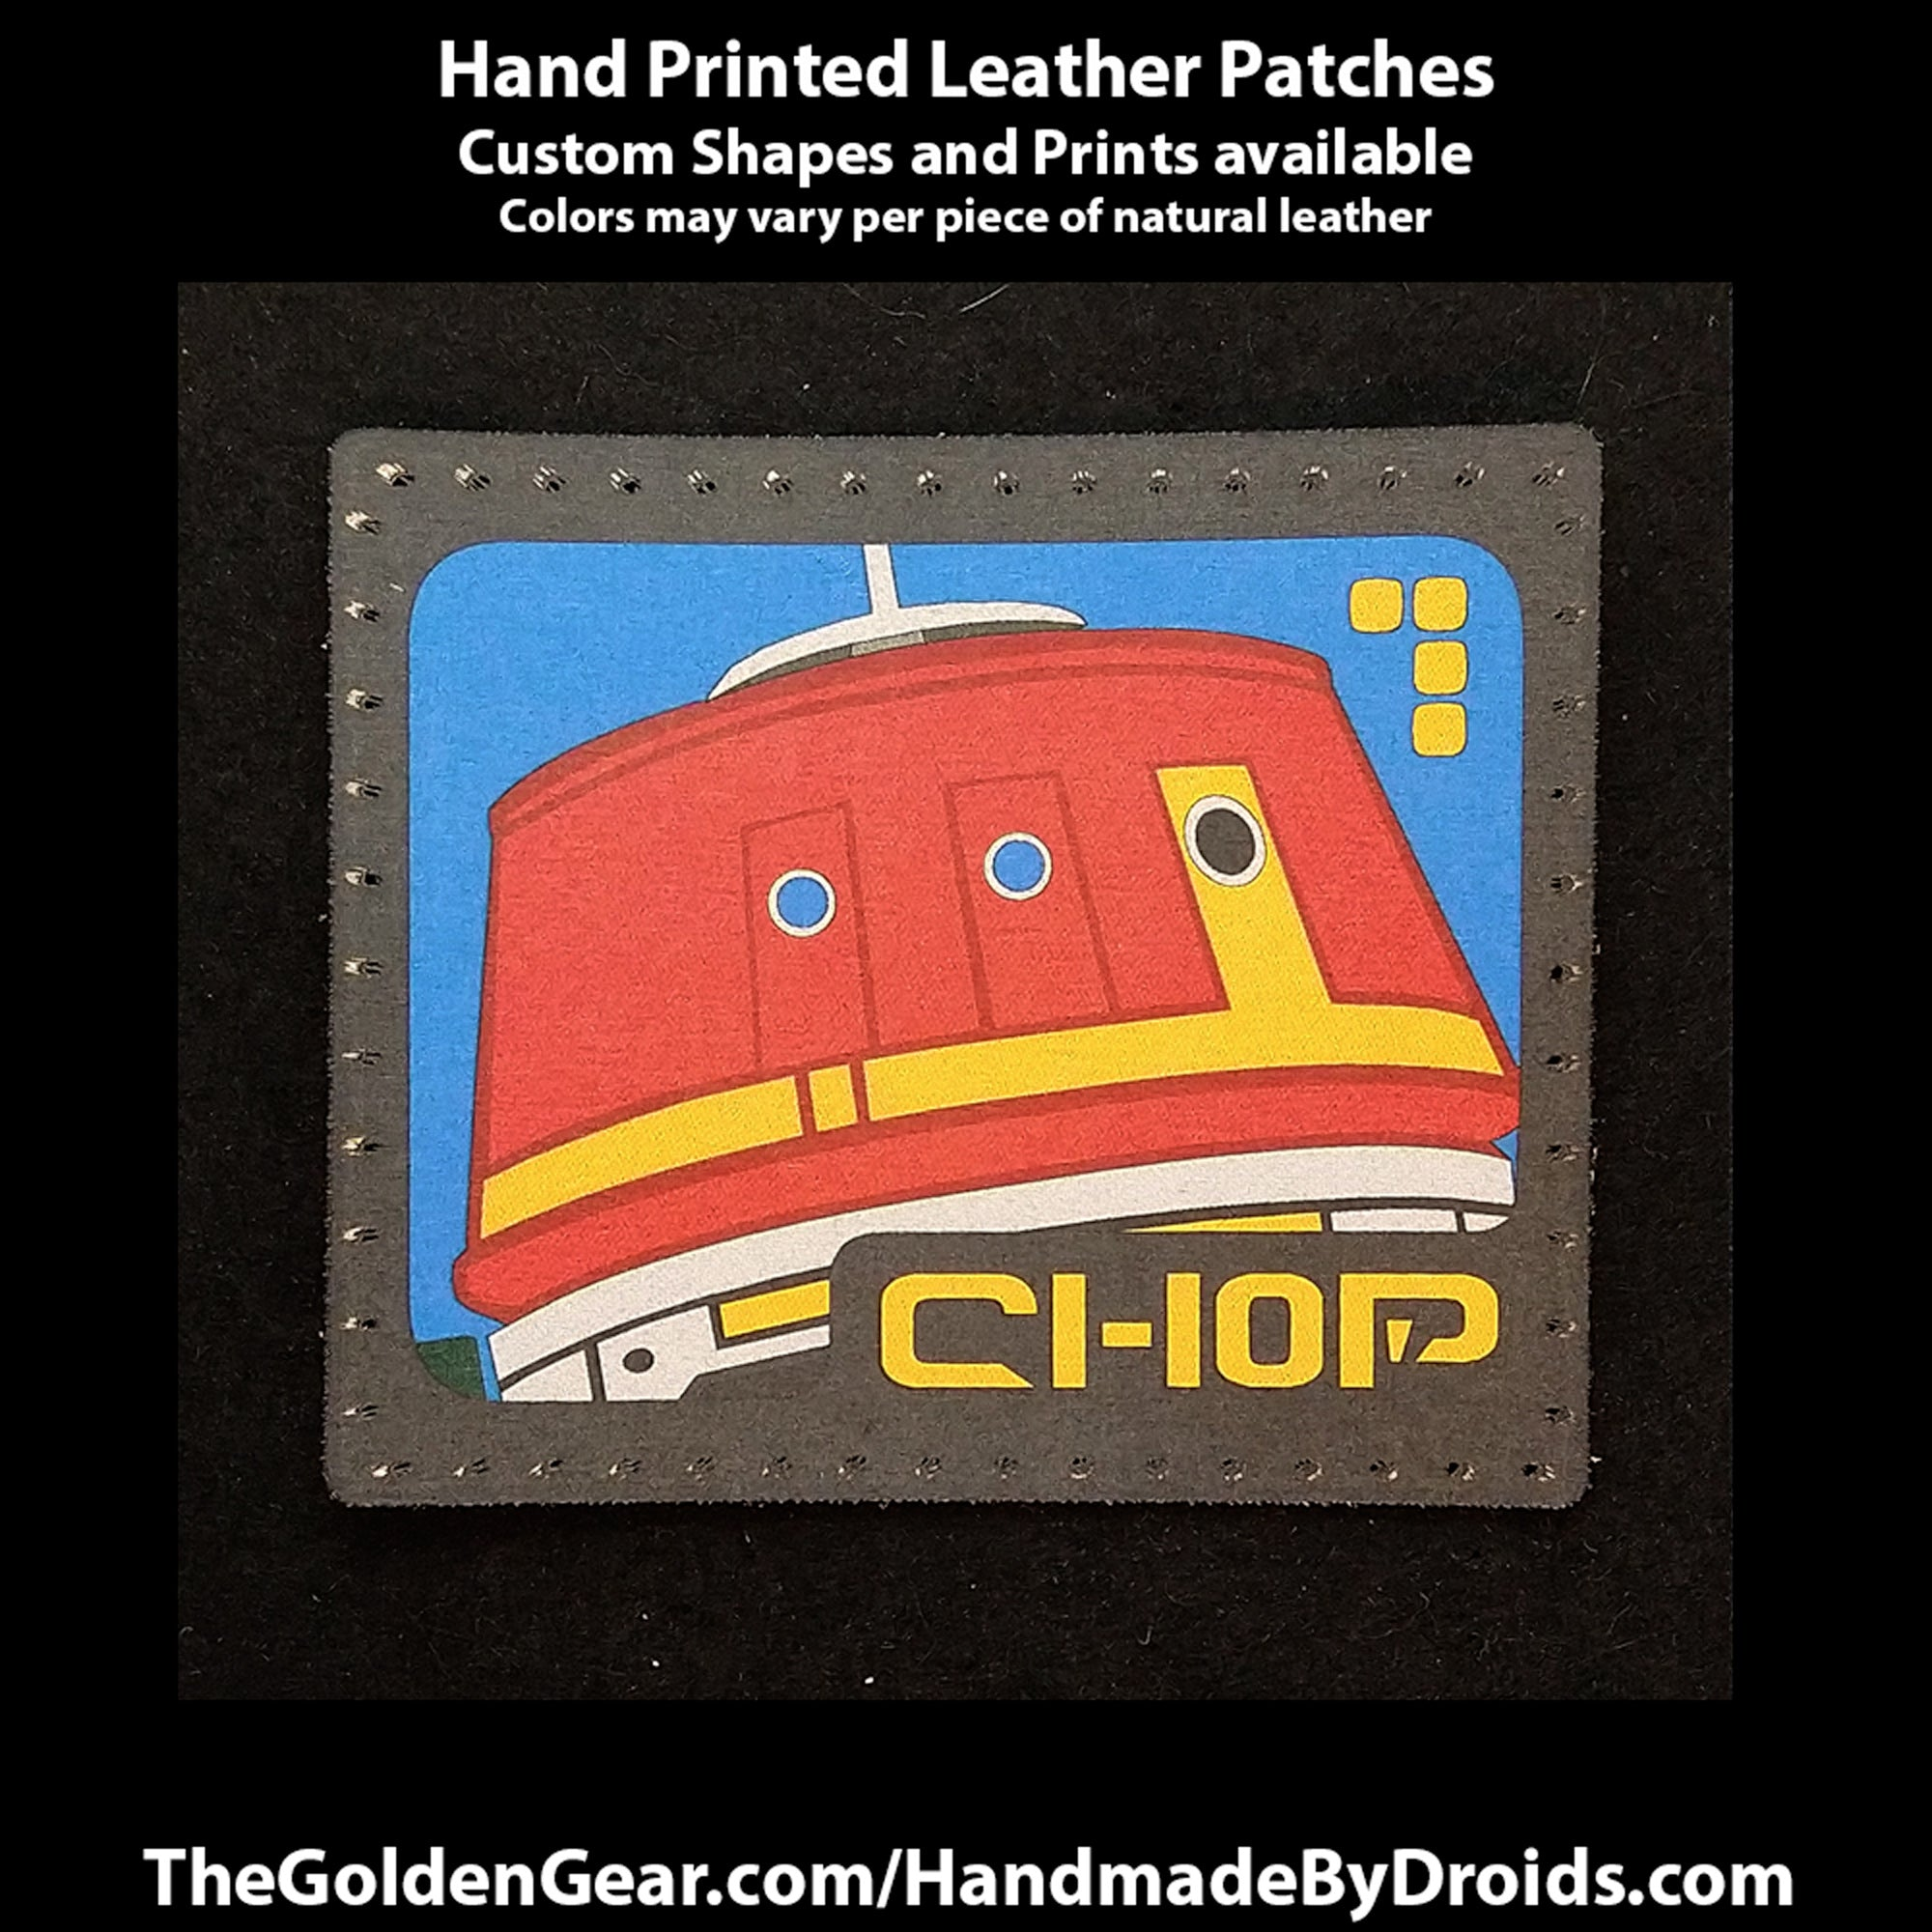 C1-10p Chopper (Star Wars) 3.8 inch Leather Patch